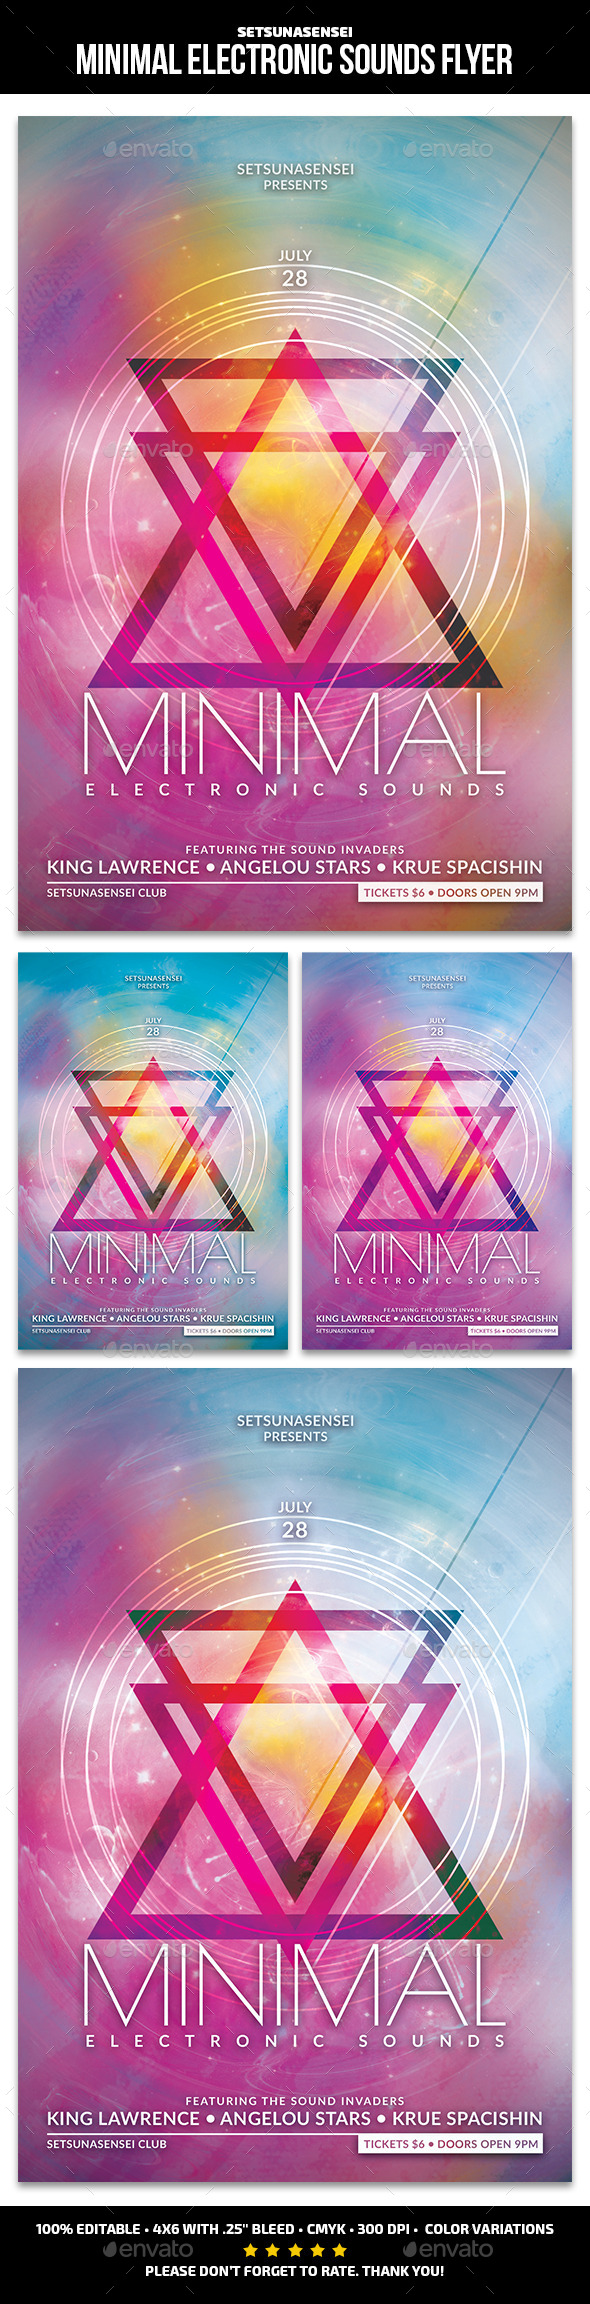 GraphicRiver Minimal Electronic Sounds Flyer 11200619